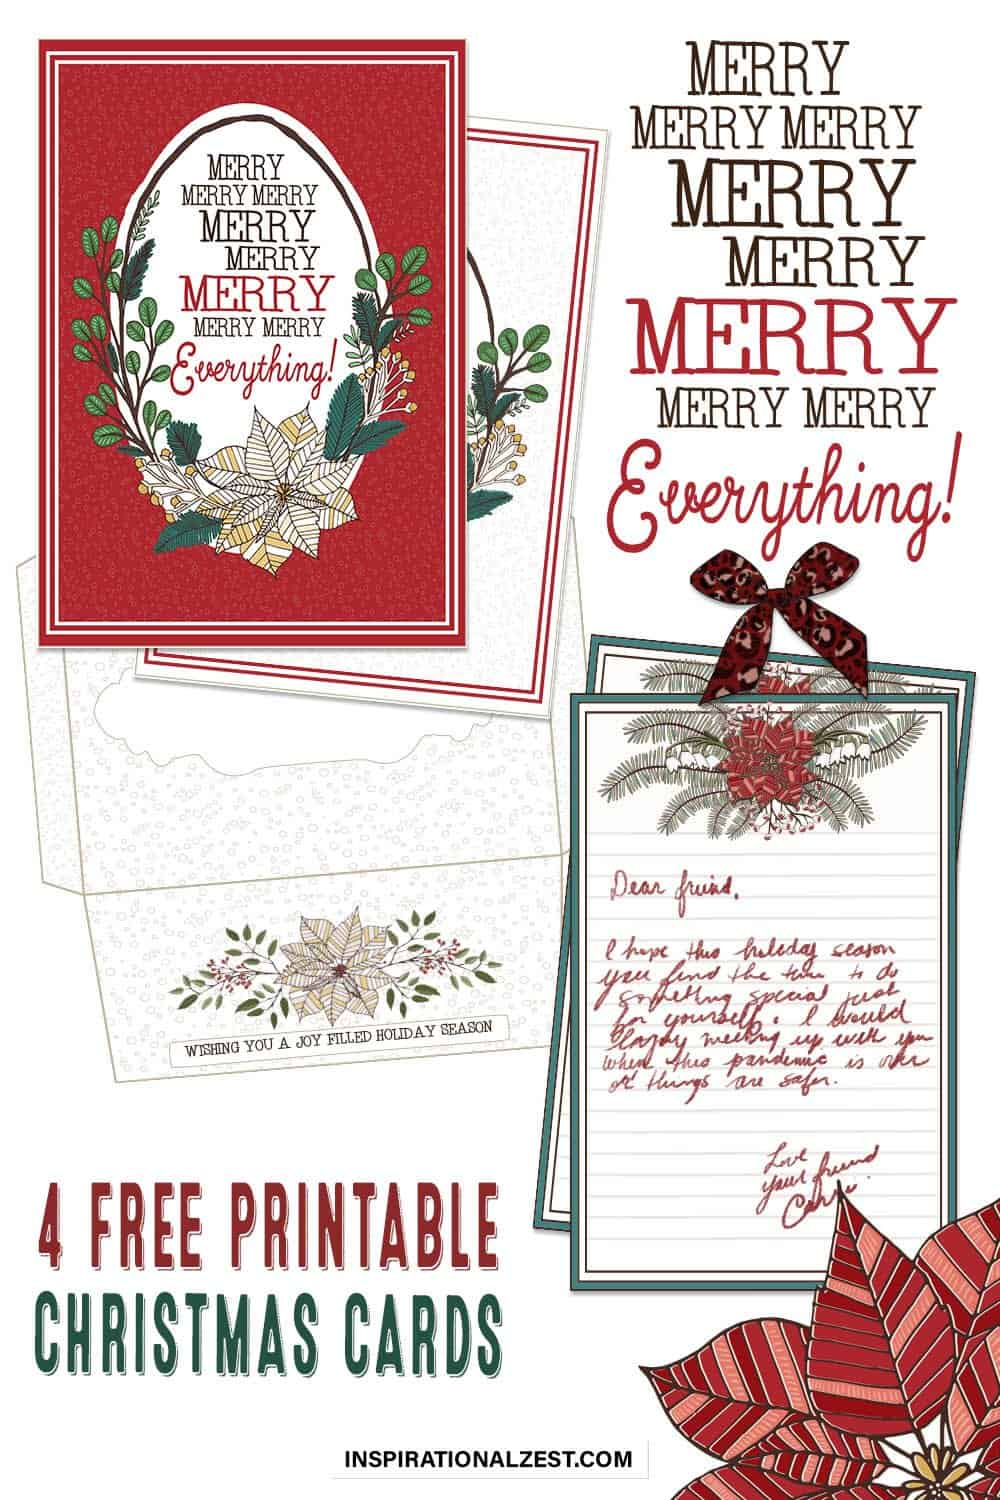 Printable Christmas Cards | Merry Everything!